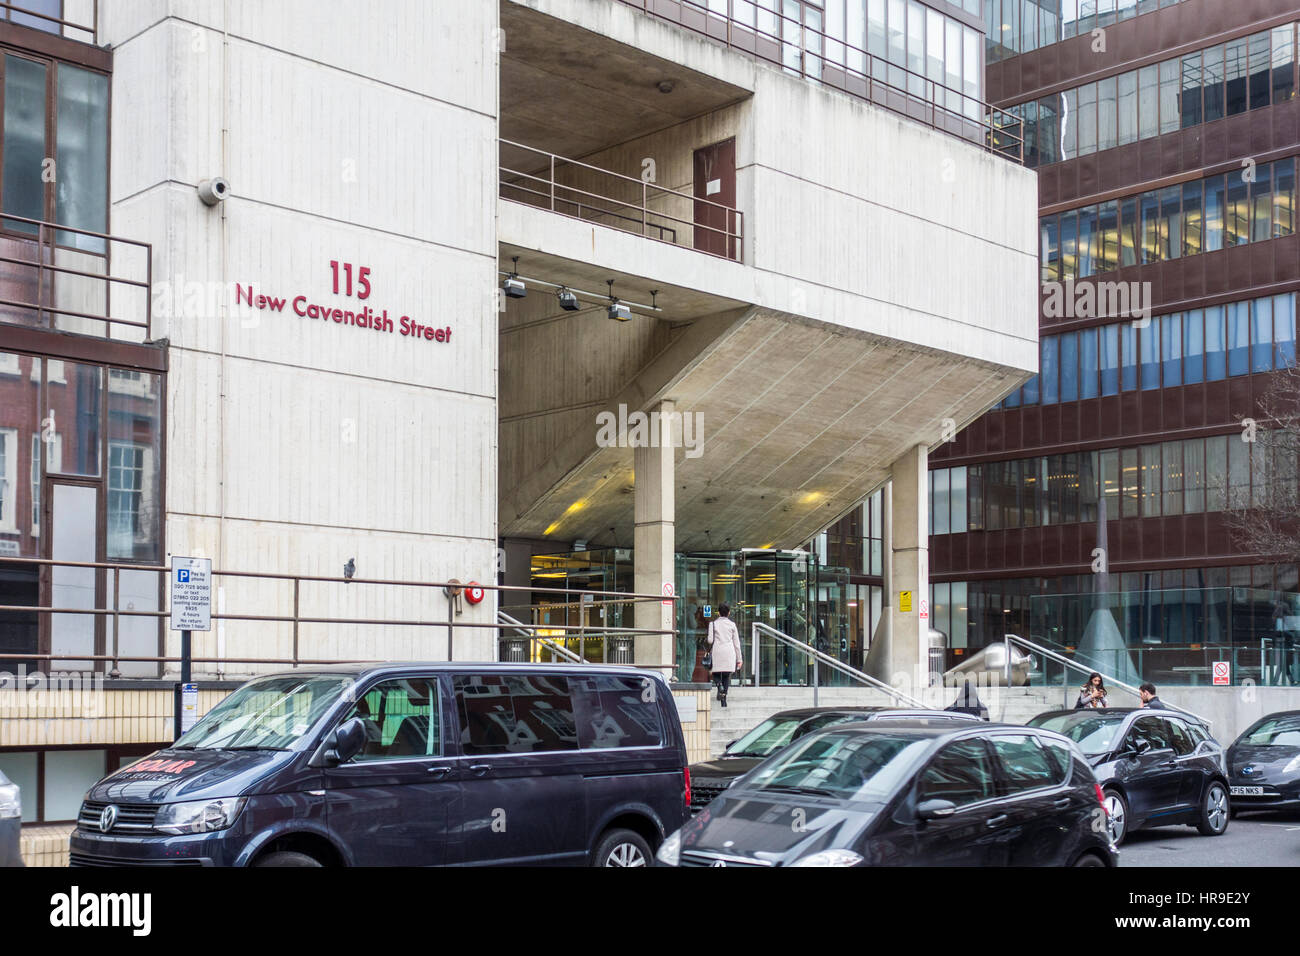 University of Westminster, Cavendish Campus Central London Polytechnic, College of Engineering and Science 115 New - Stock Image